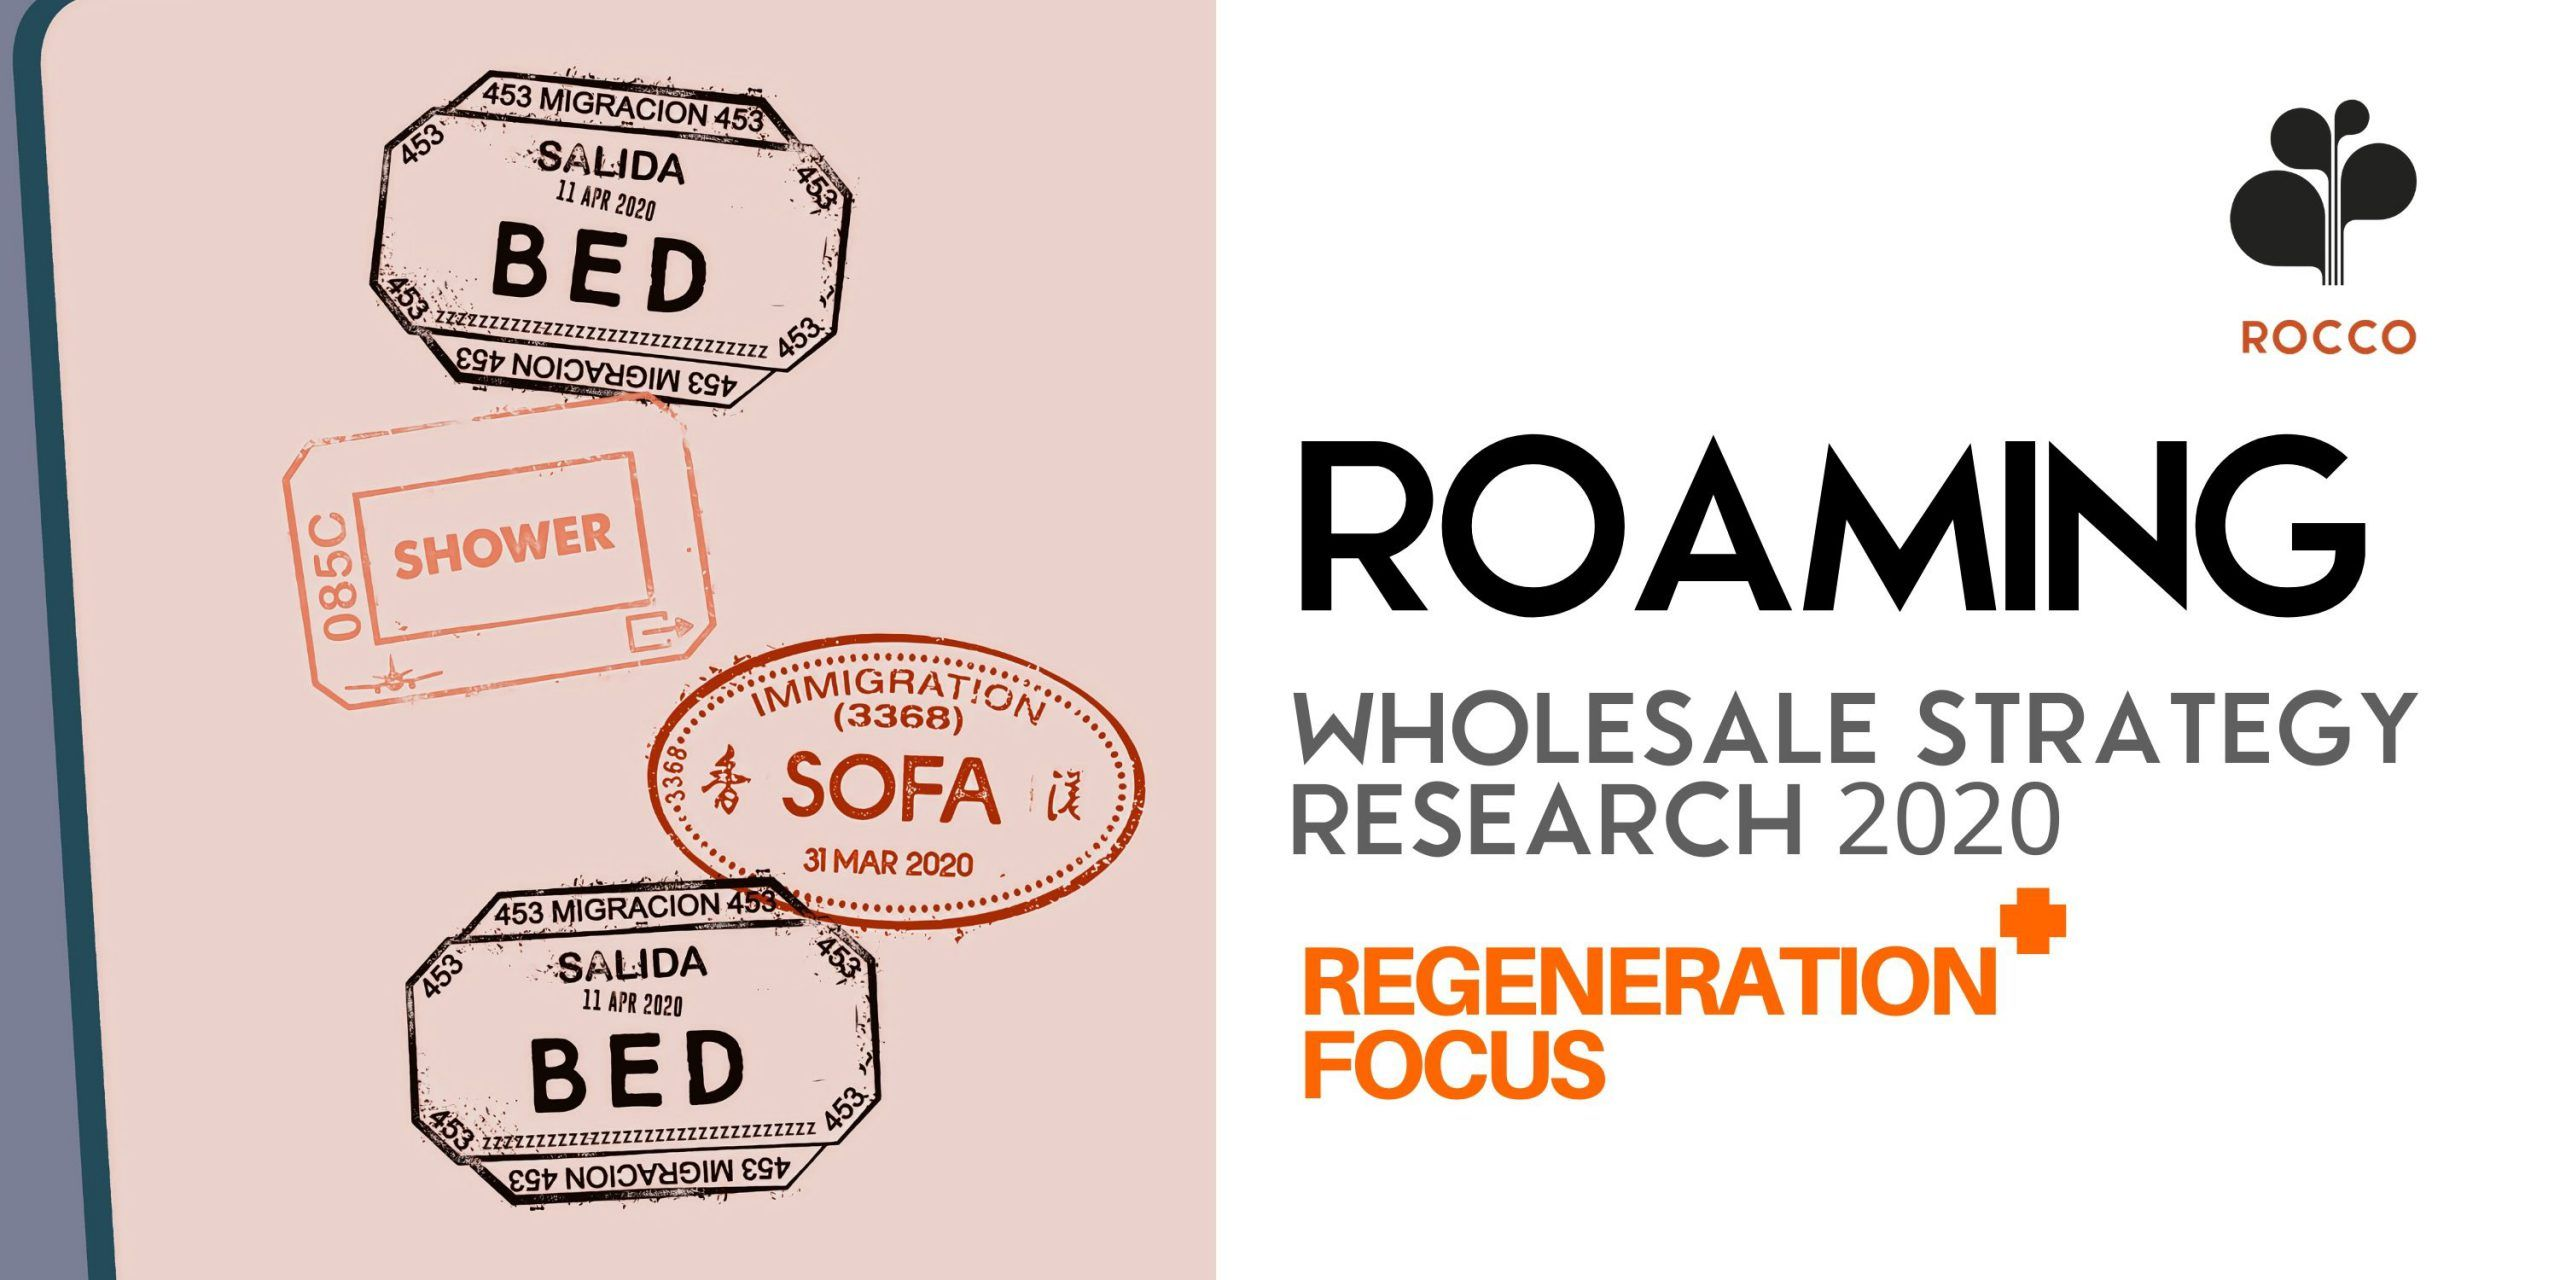 New Wholesale Roaming Strategy Research for 2020 – Covid 19 effects